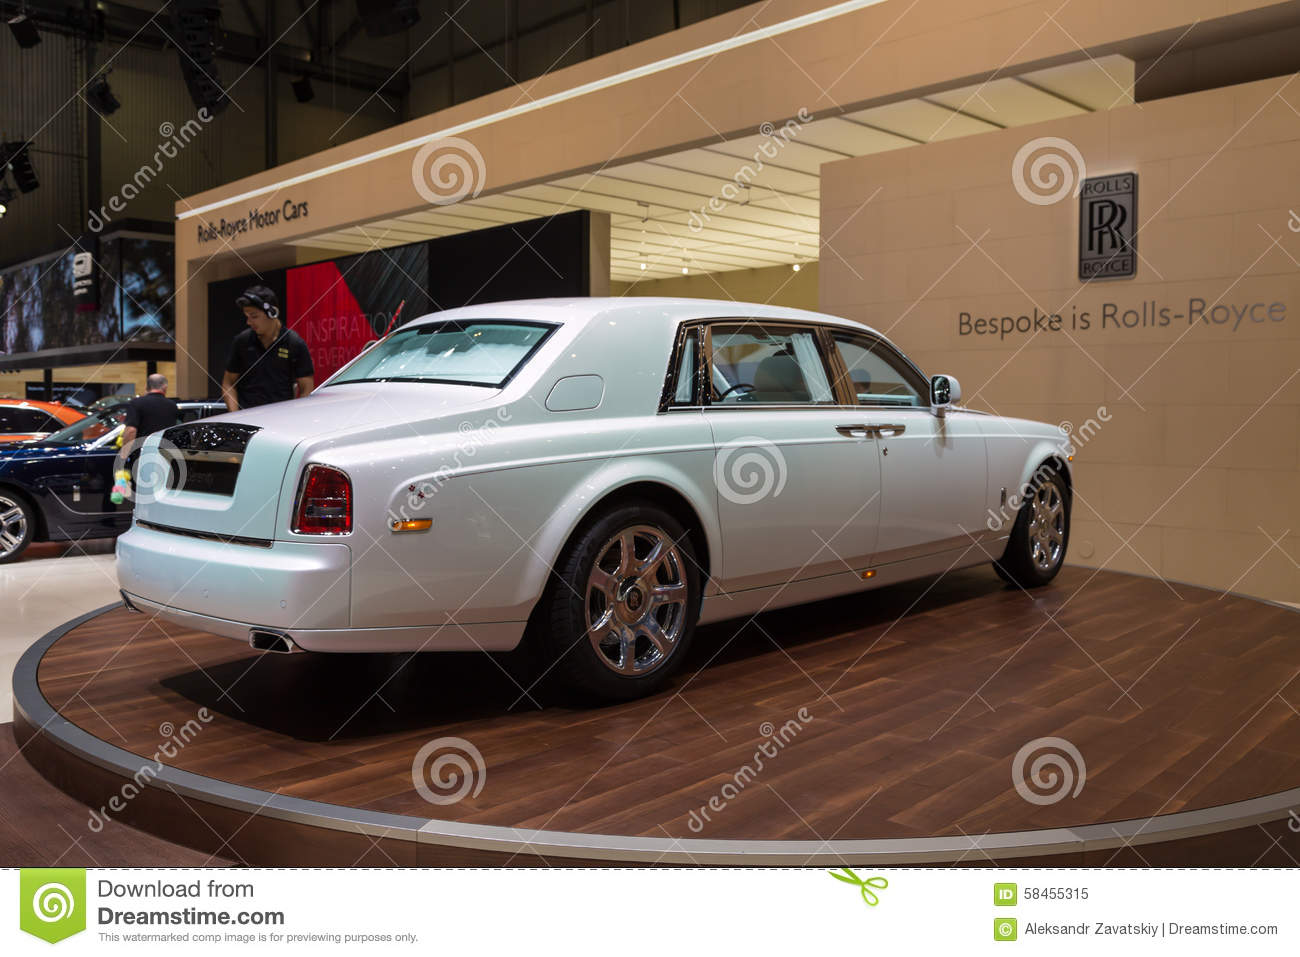 Phantom Serenity 2015 Rolls Royce Phantom Serenity Editorial Image Image Of